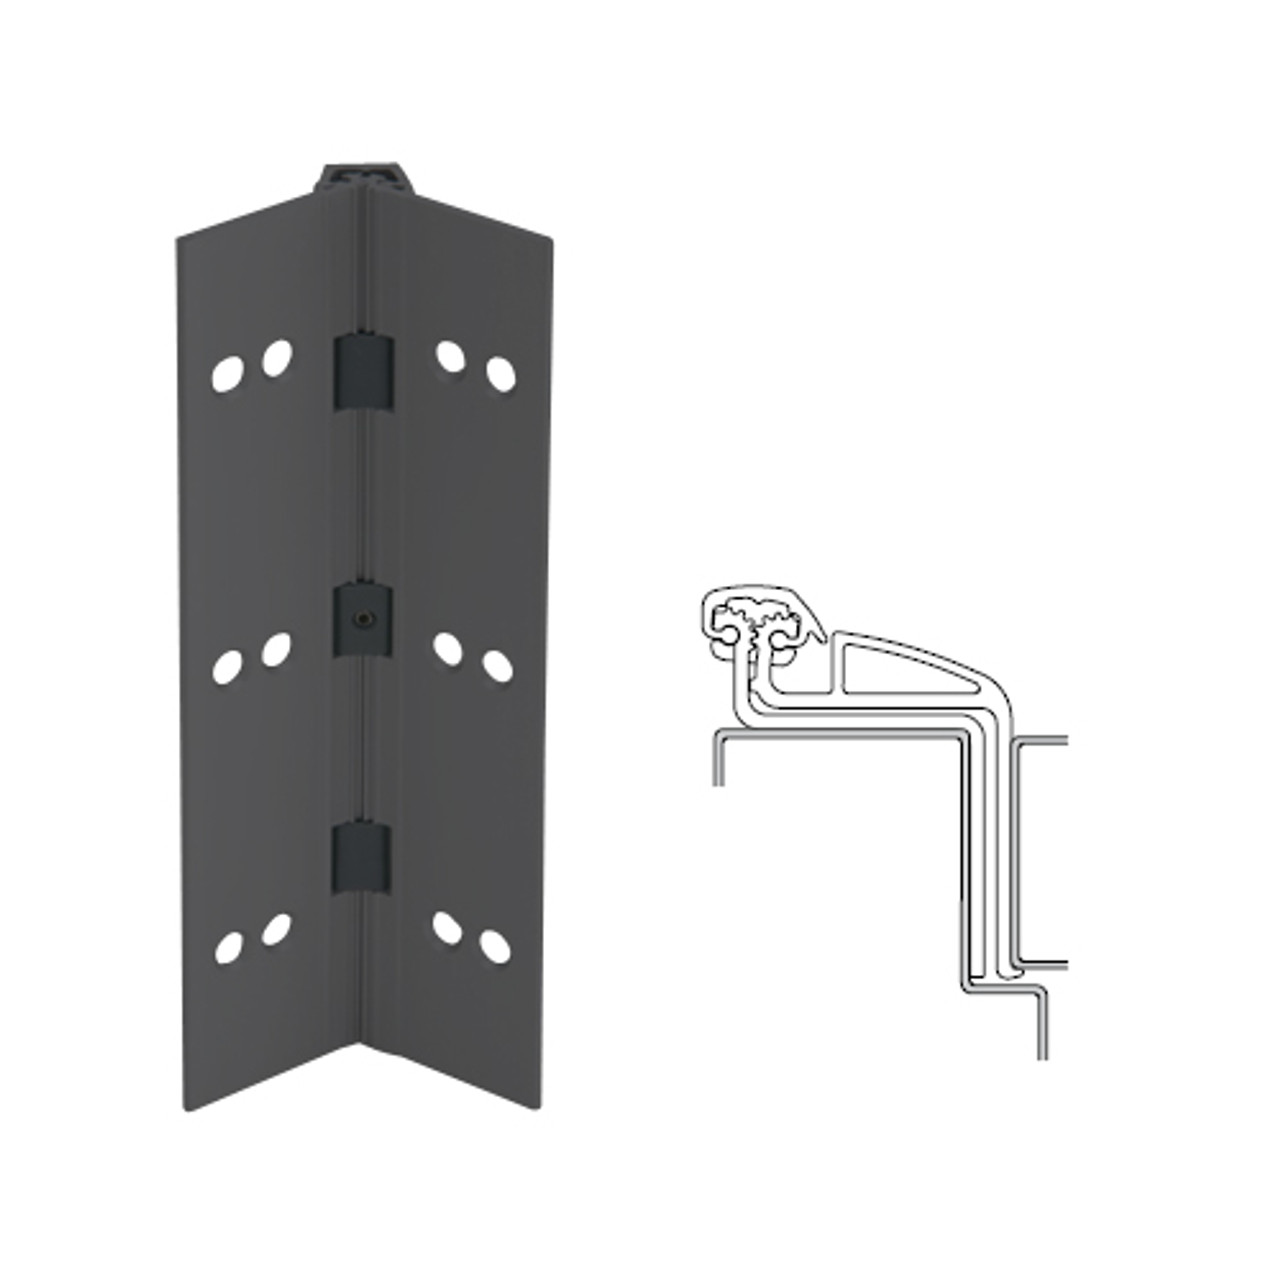 041XY-315AN-120-WD IVES Full Mortise Continuous Geared Hinges with Wood Screws in Anodized Black